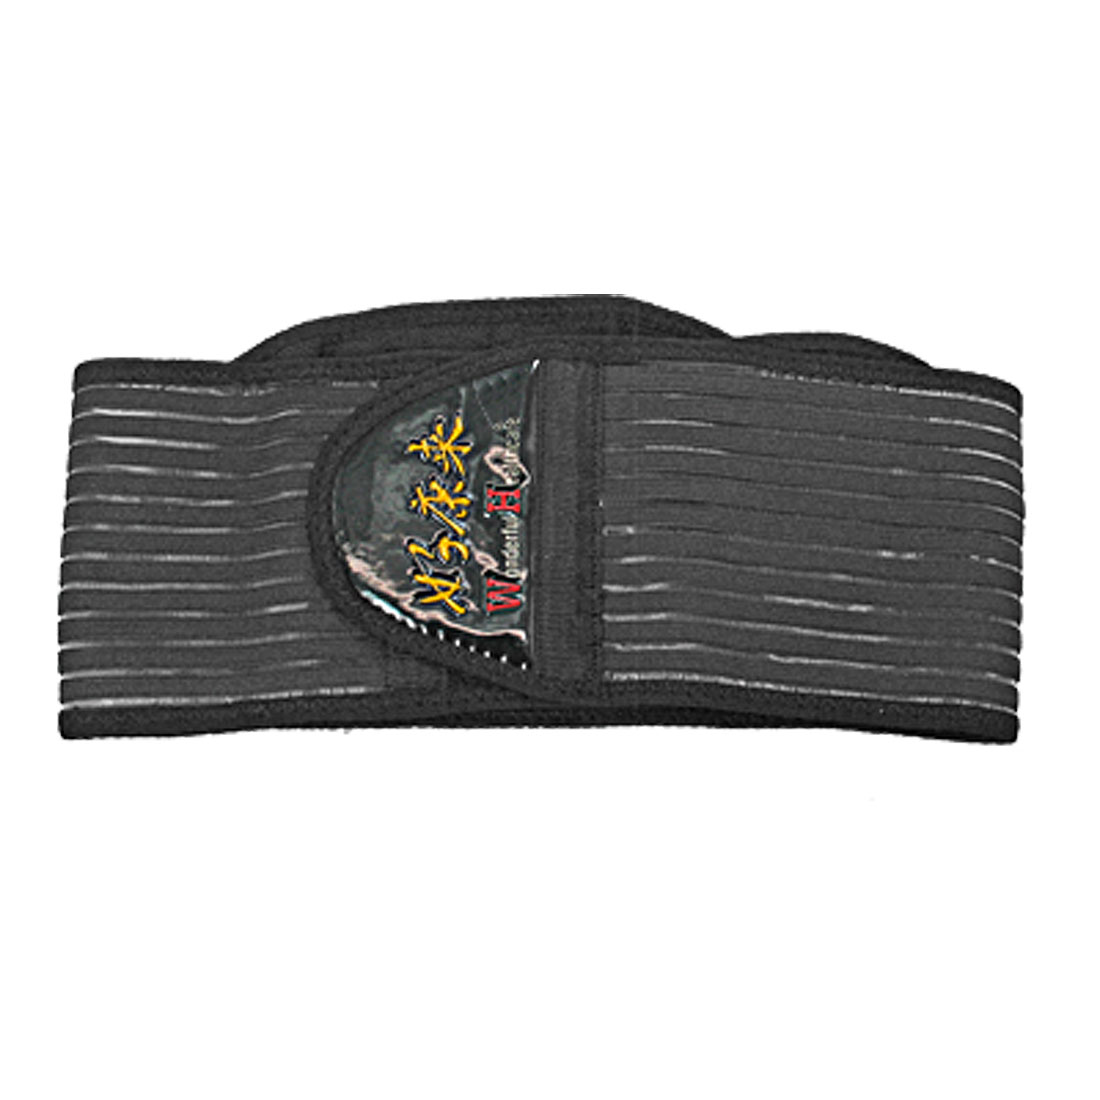 Black Magnetic Sports Support Belt Strap Waist Protector